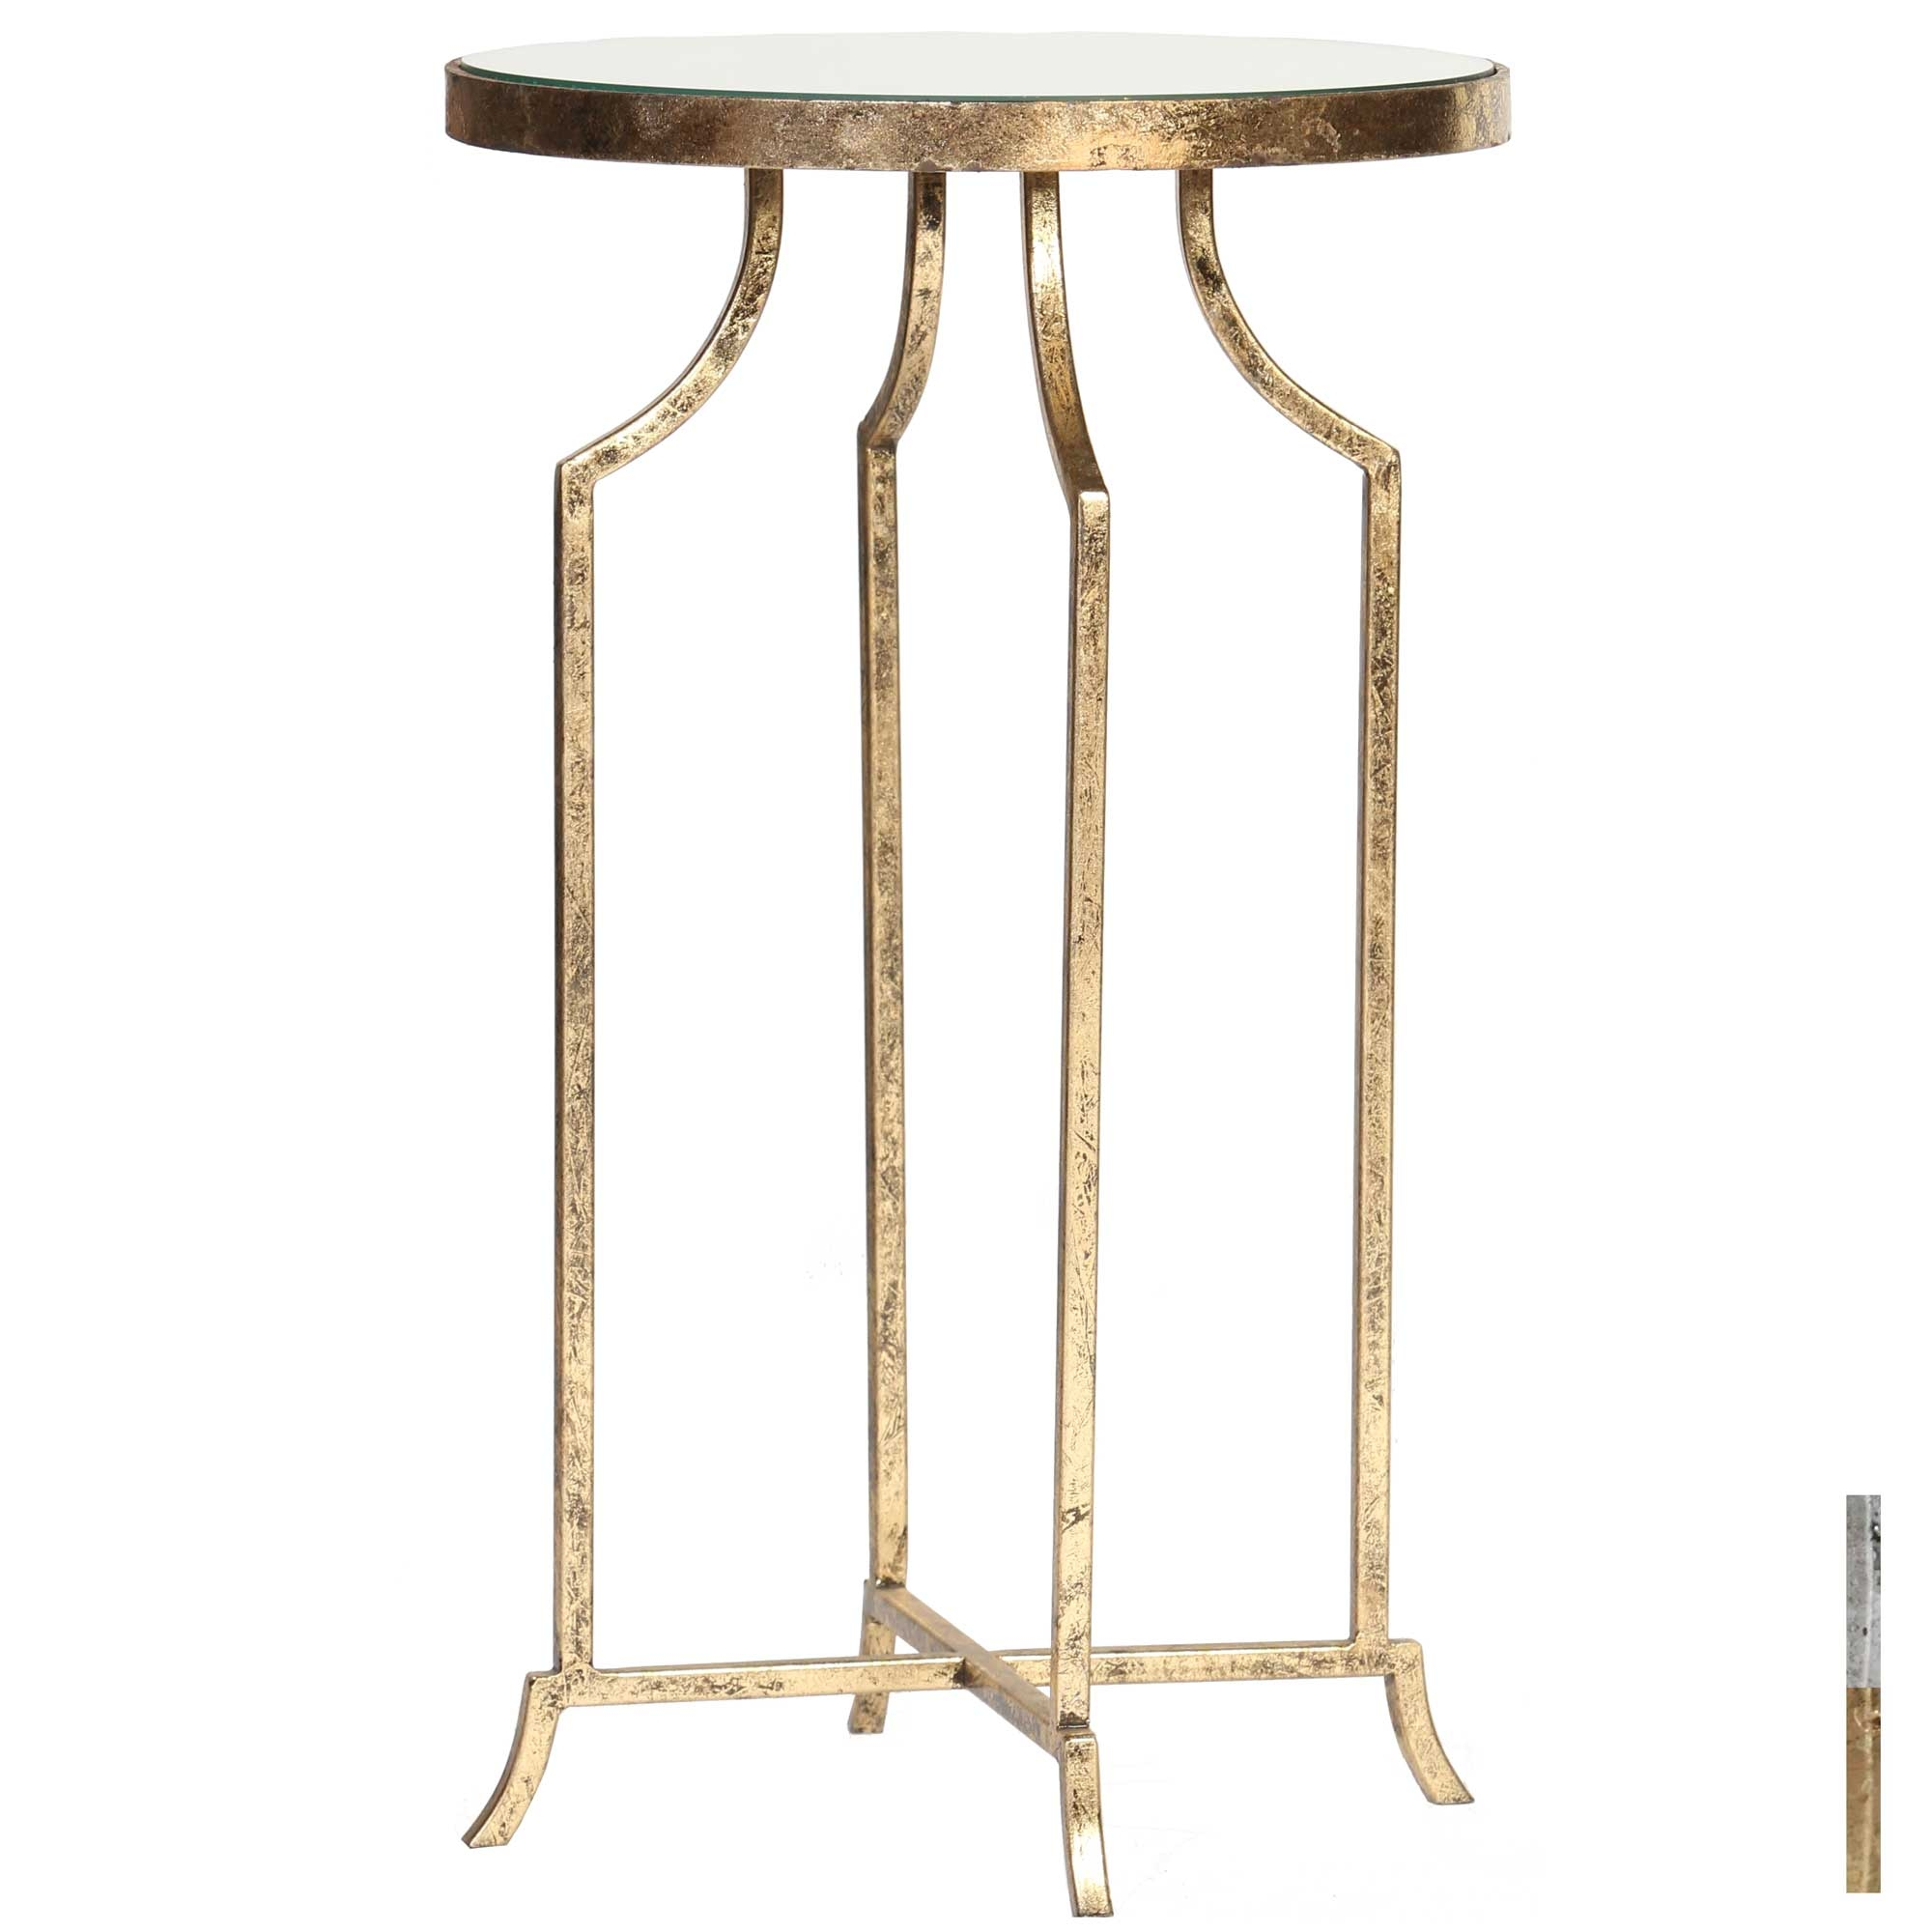 siehr accent table timeless wrought iron twi mirrored glass with drawer larger drum throne seat only coffee and end tables cement side small homemade designs mimosa outdoor